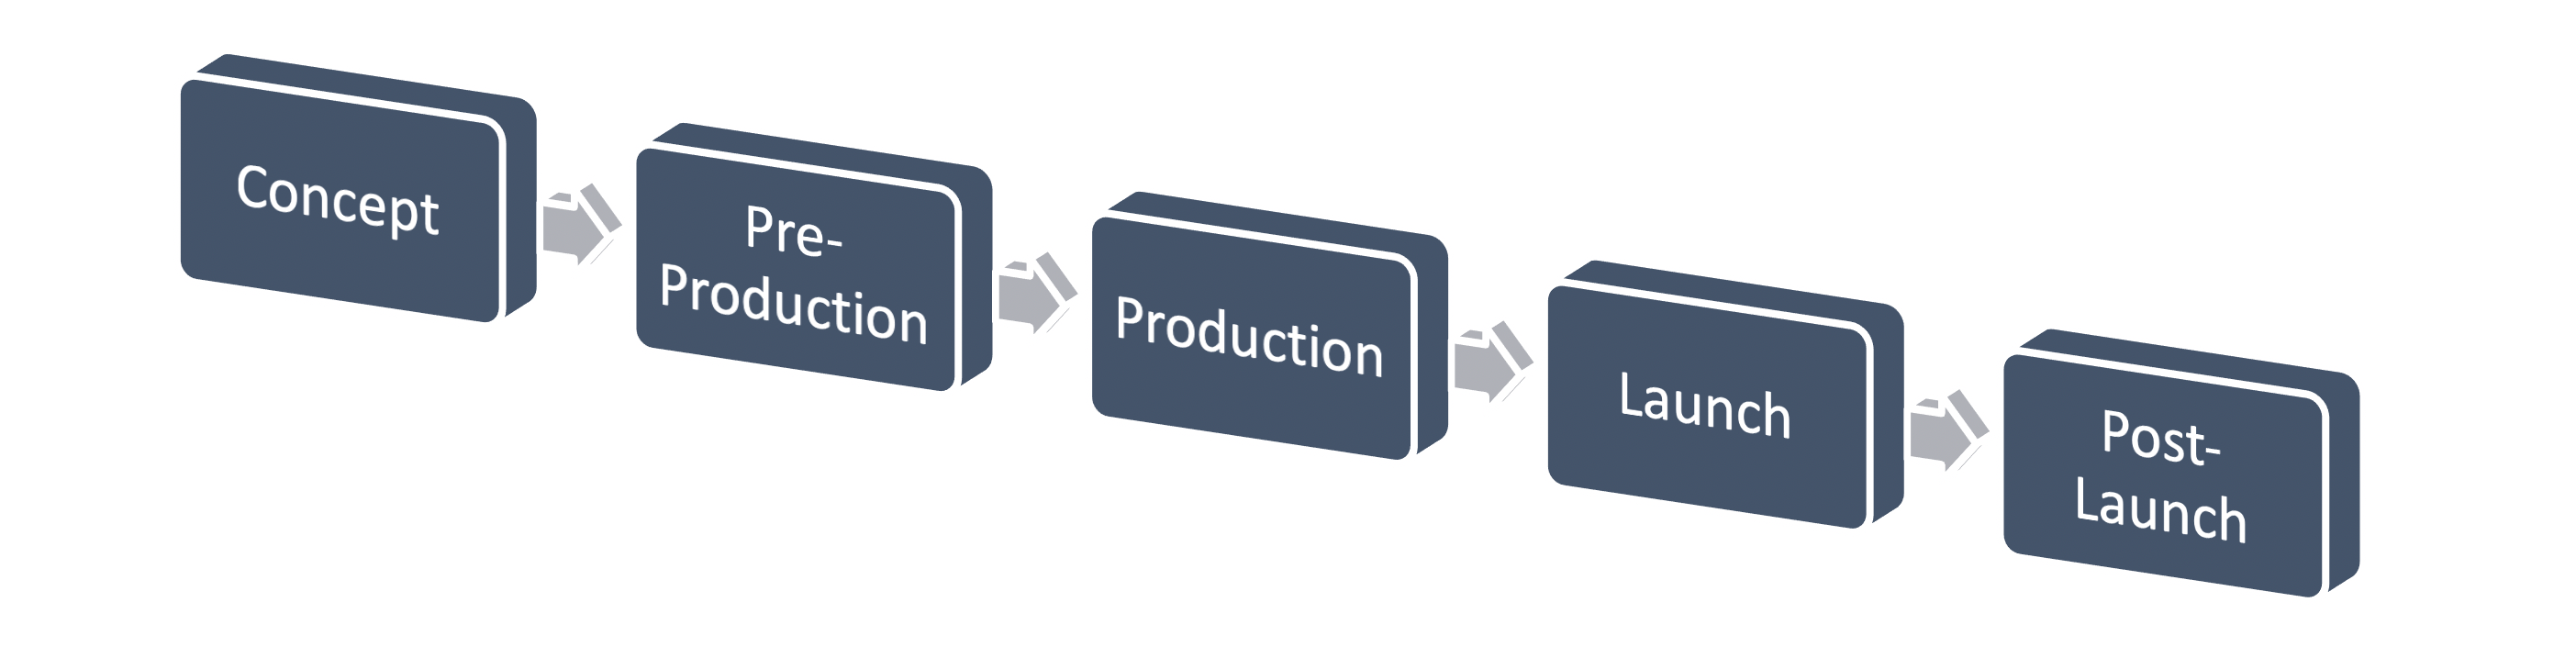 Arrows indicating the process: concept, pre-production, production, launch, and post-launch.